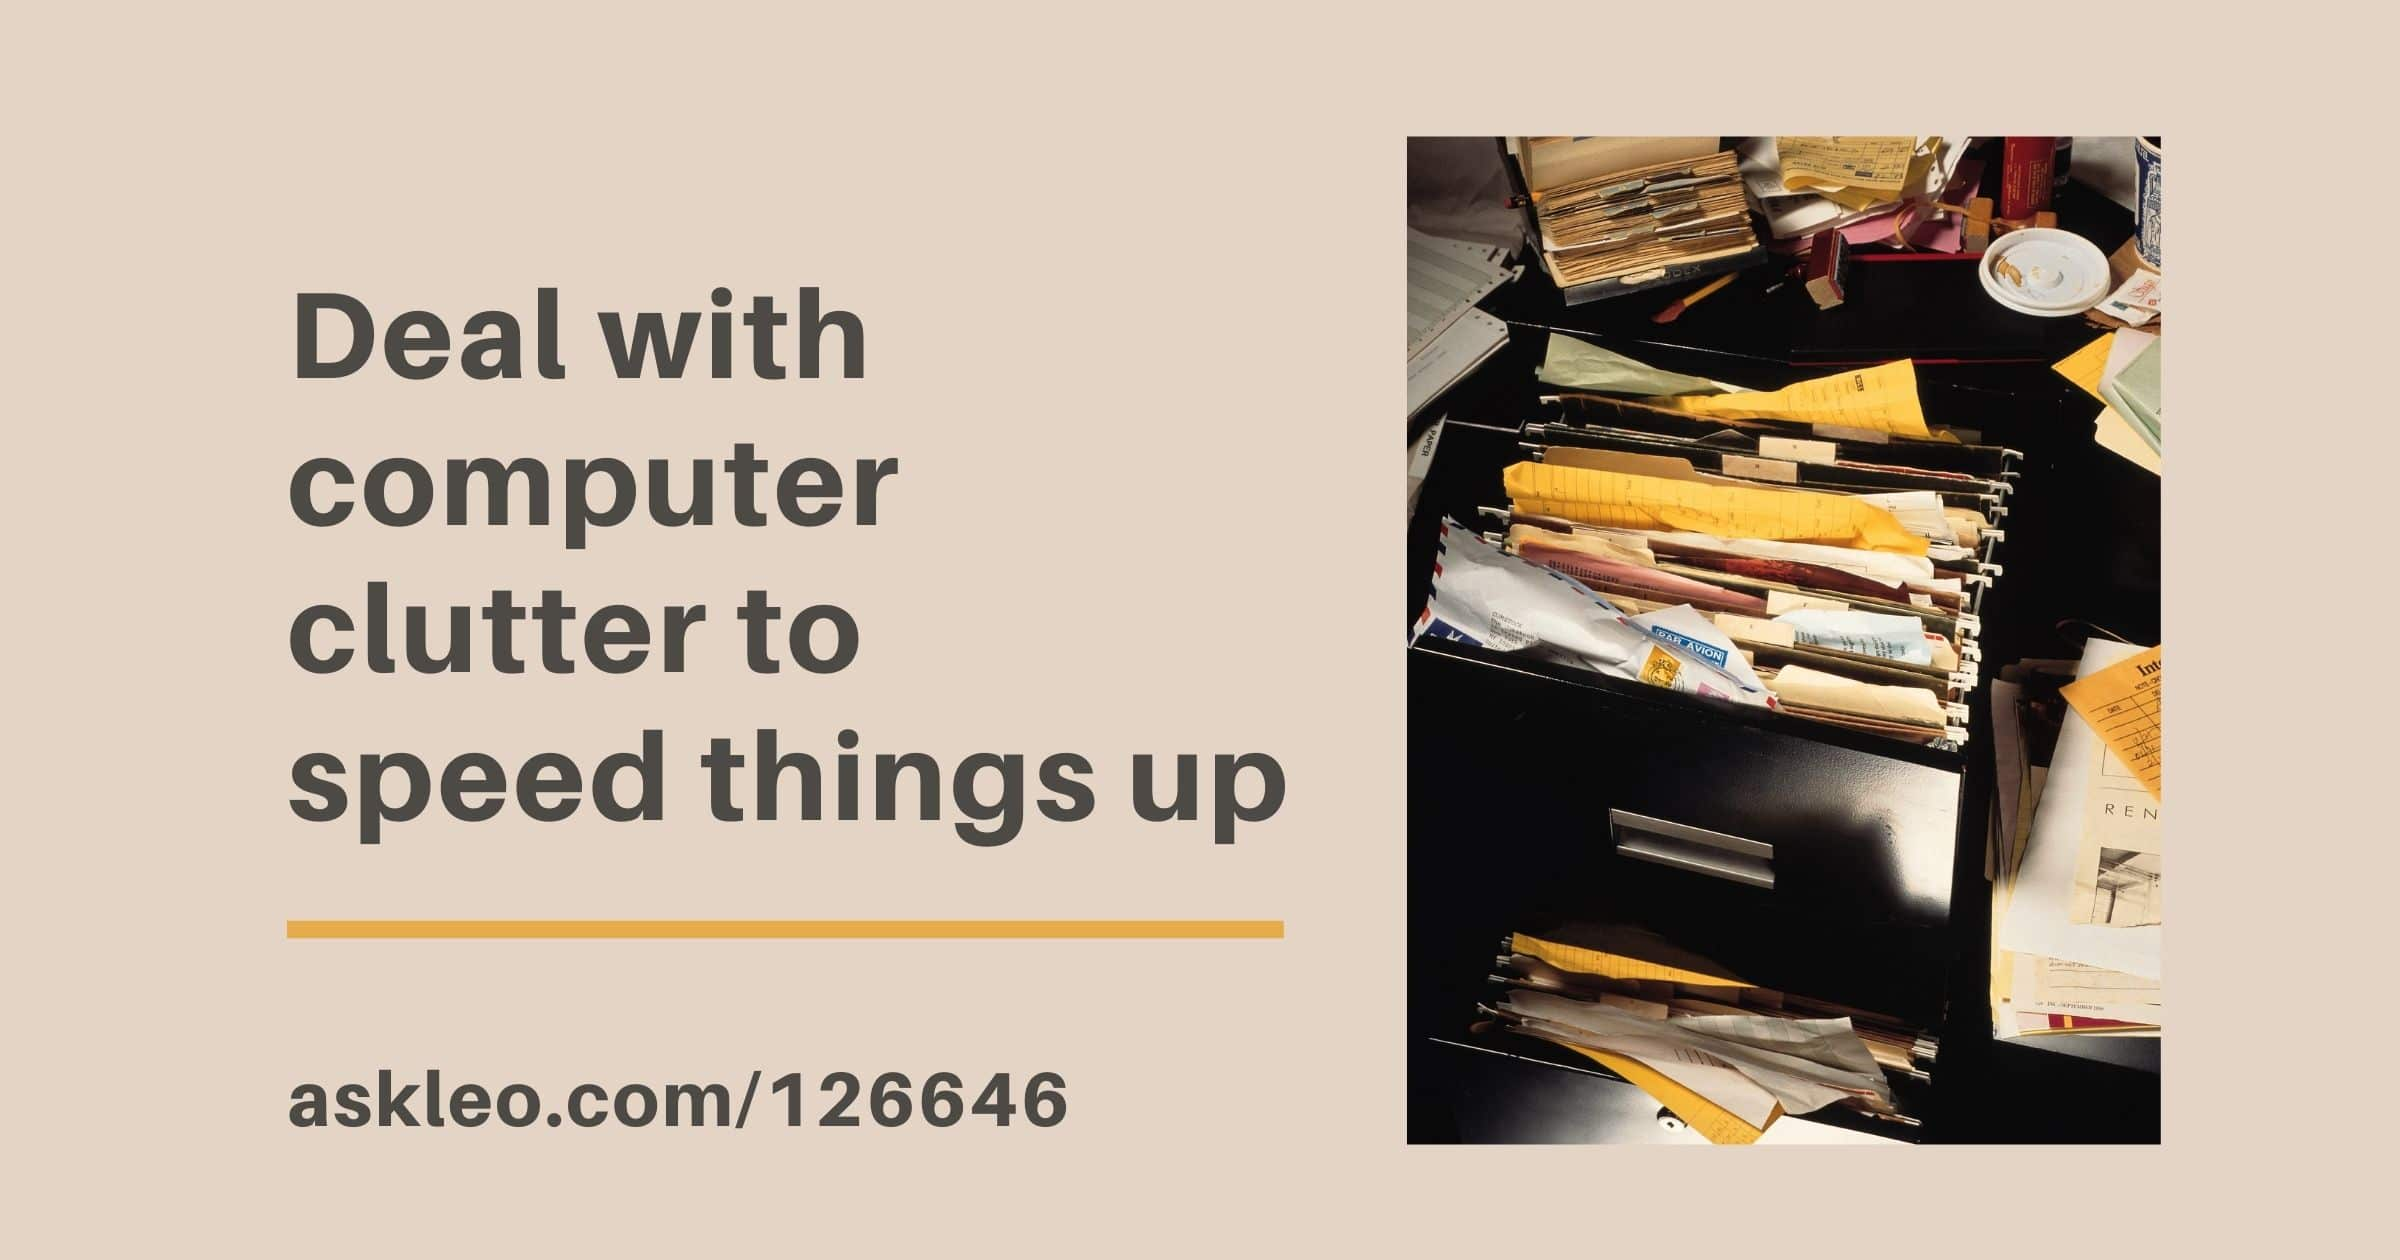 Deal with Computer Clutter to Speed Things Up